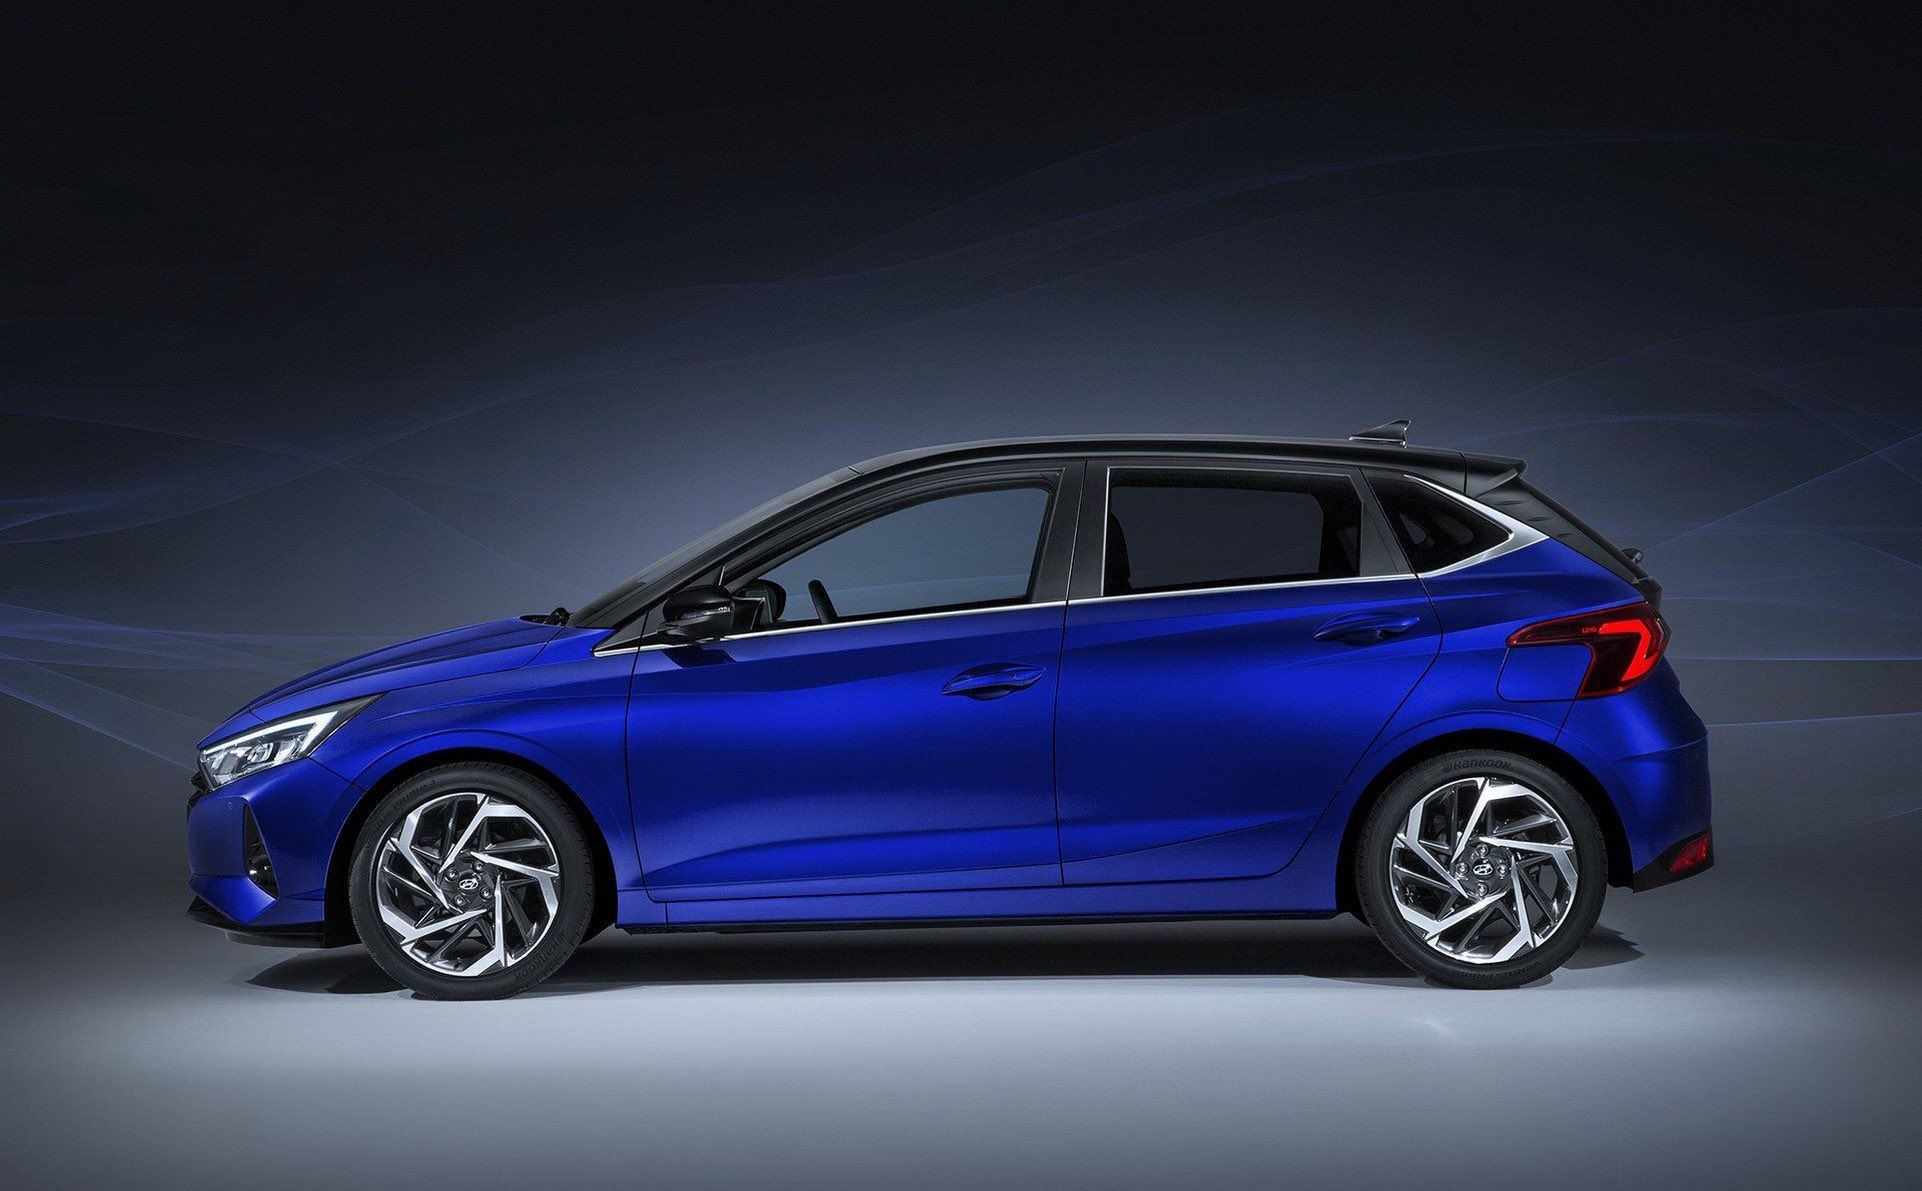 The premium hatchback missed the Auto Expo 2020, but is likely to be launched in India at a later date.